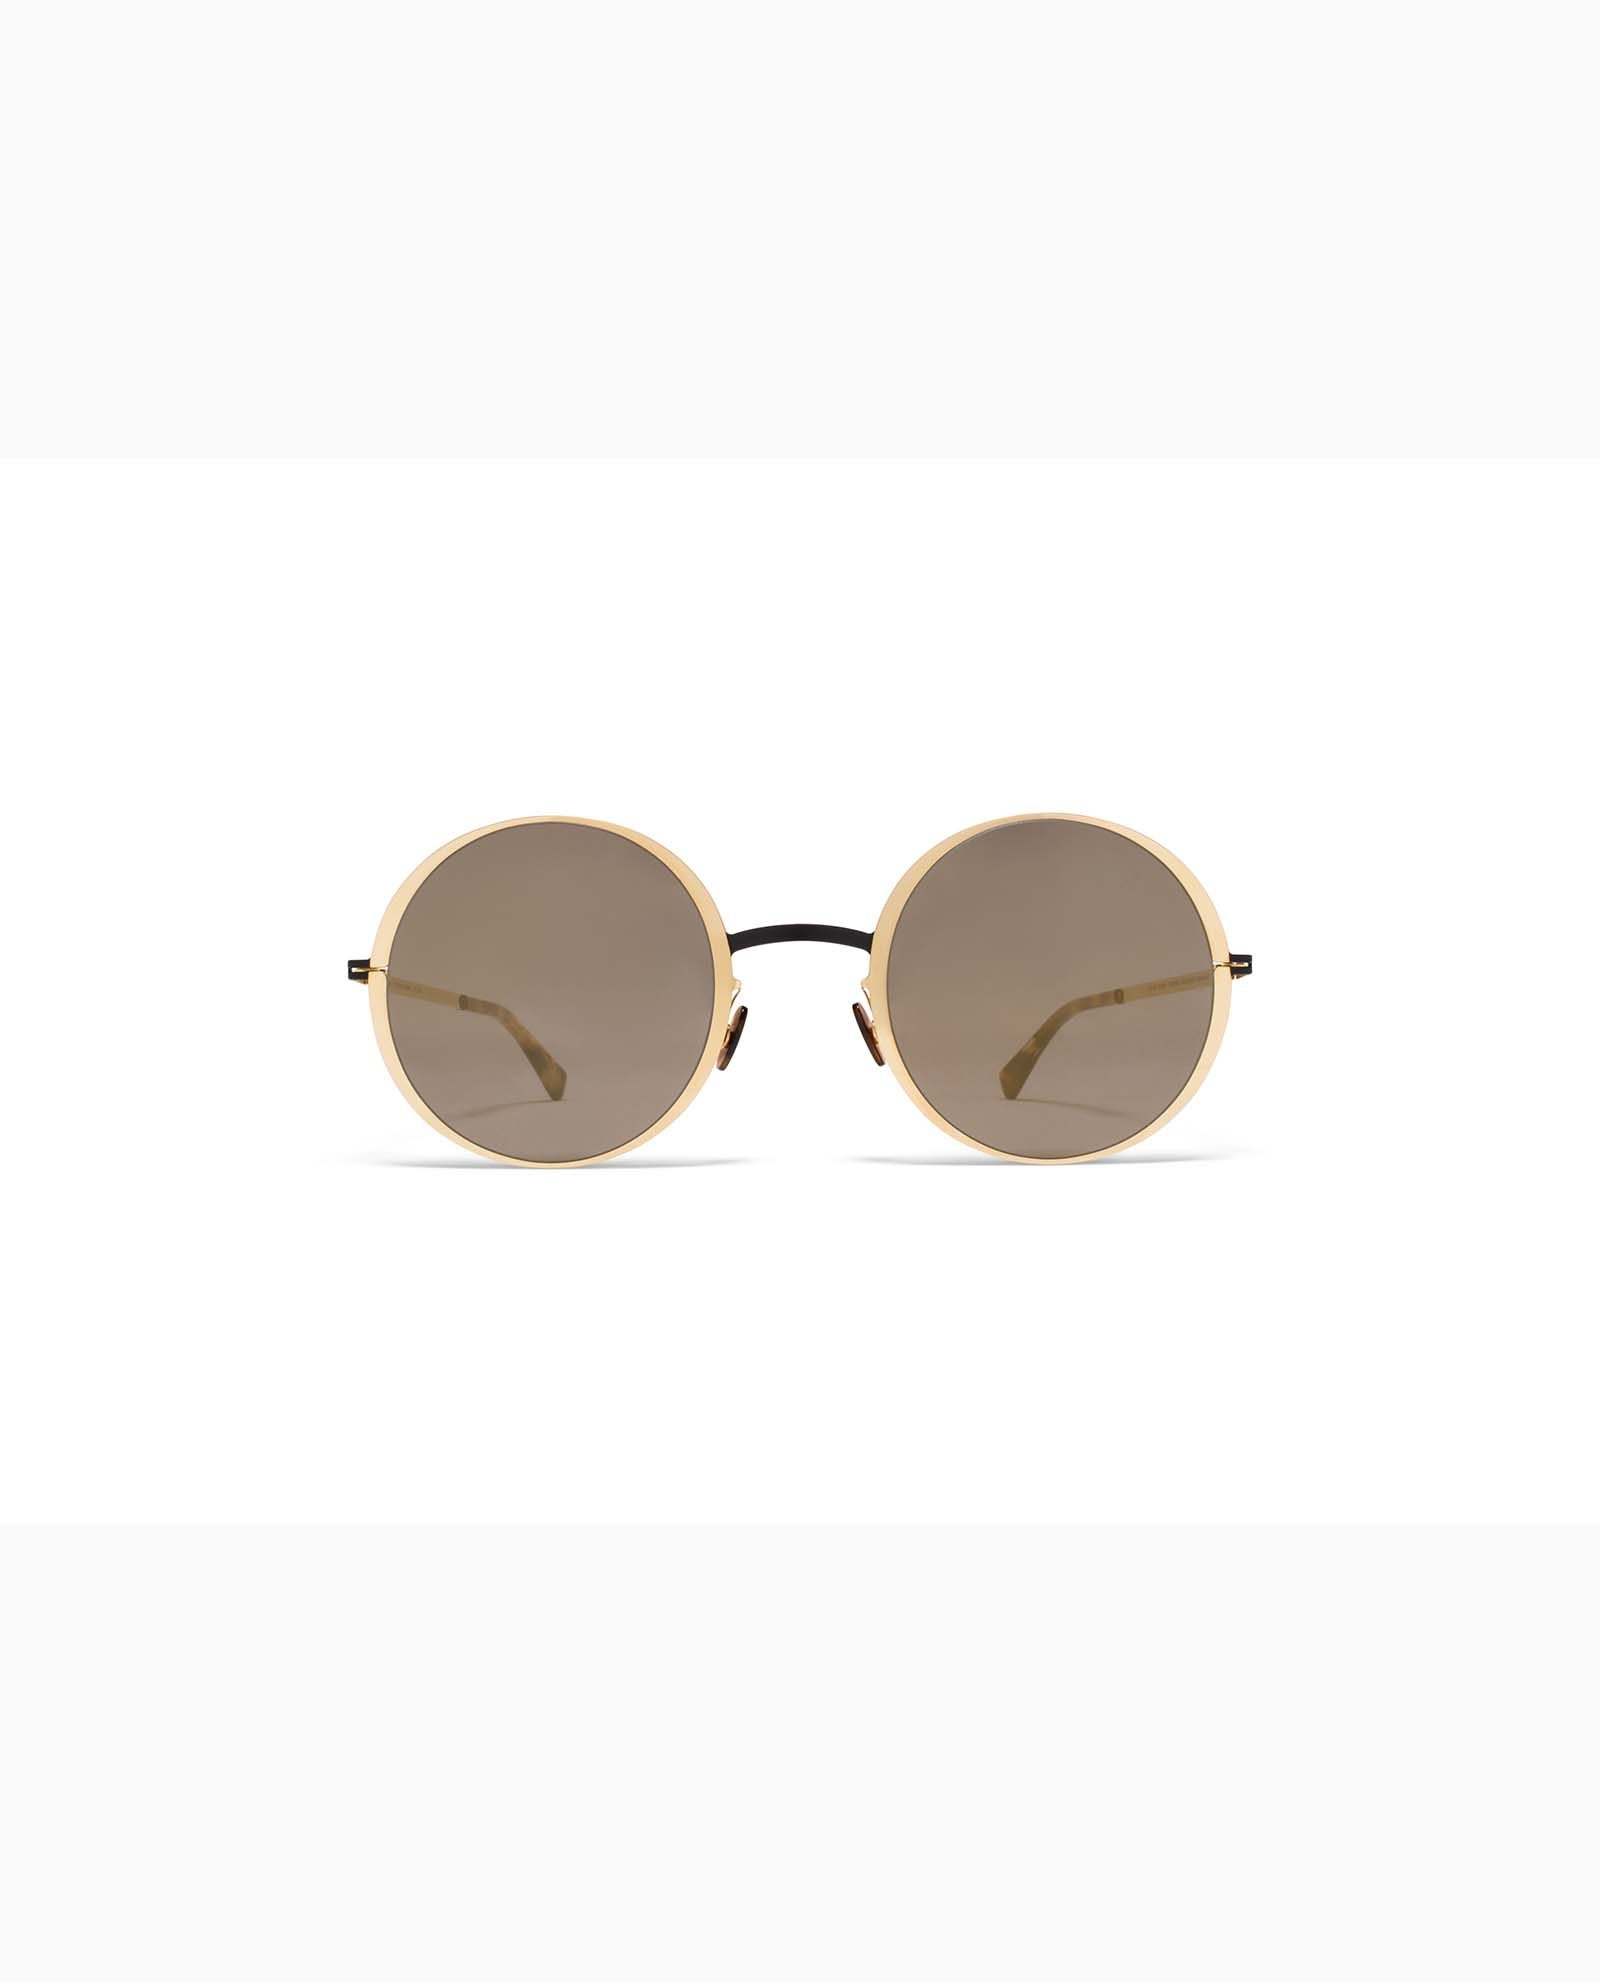 https://www.polydoruoptika.gr/wp-content/uploads/2018/05/mykita-lite-acetate-sun-joona-gold-black-brilliant-2-woman.jpg